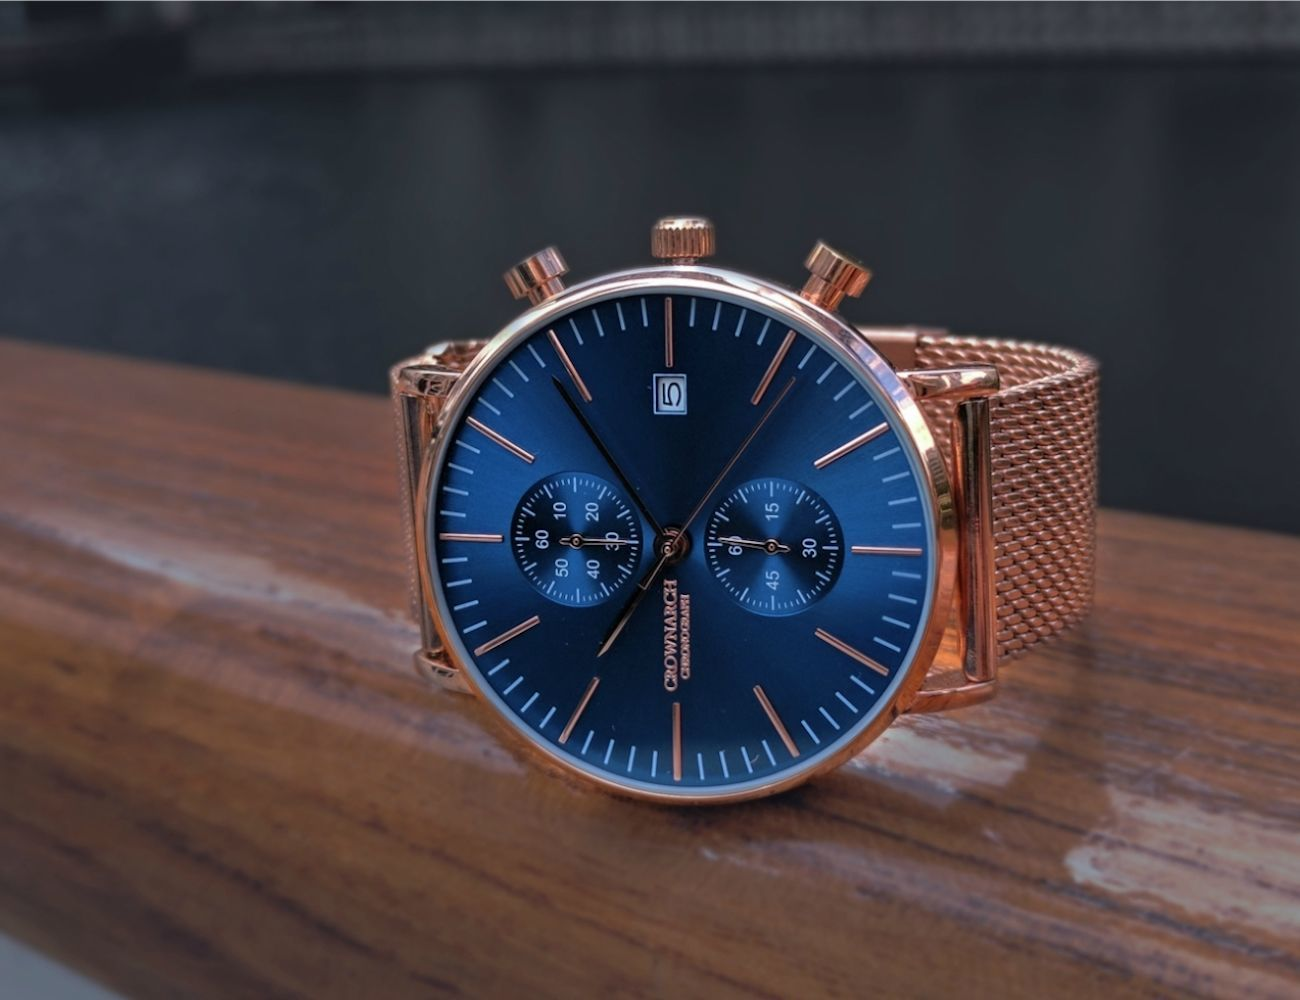 Crownarch Chronograph Watch Collection